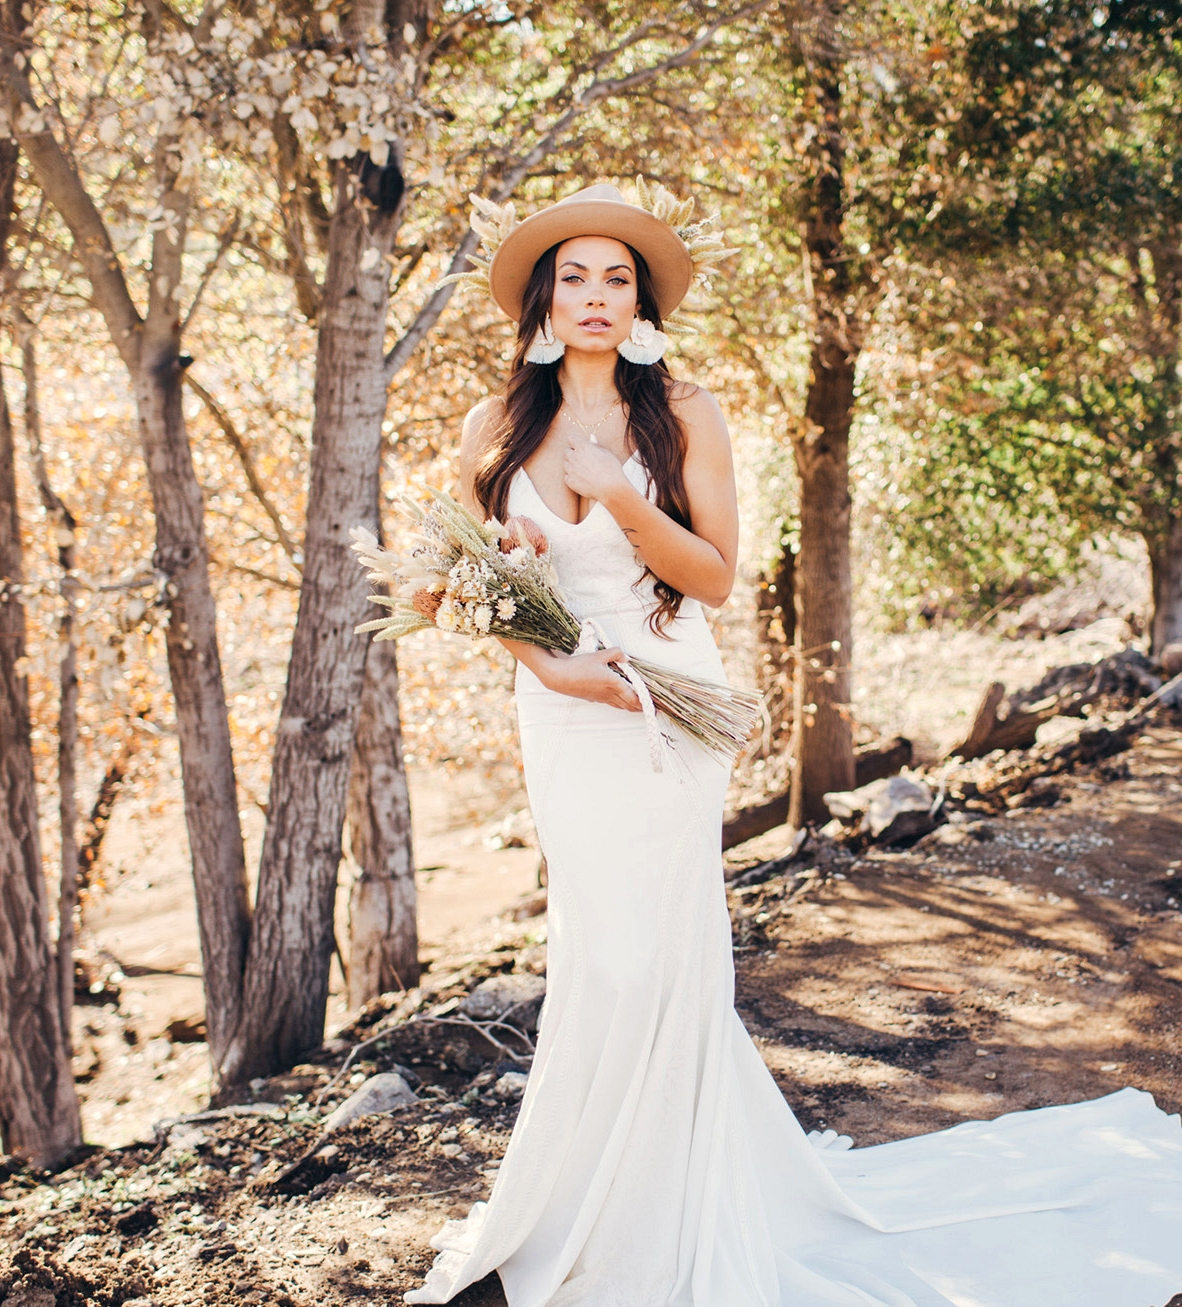 green wedding shoes x lovers society wyatt wedding dress with flower hat and dried flower bouquet